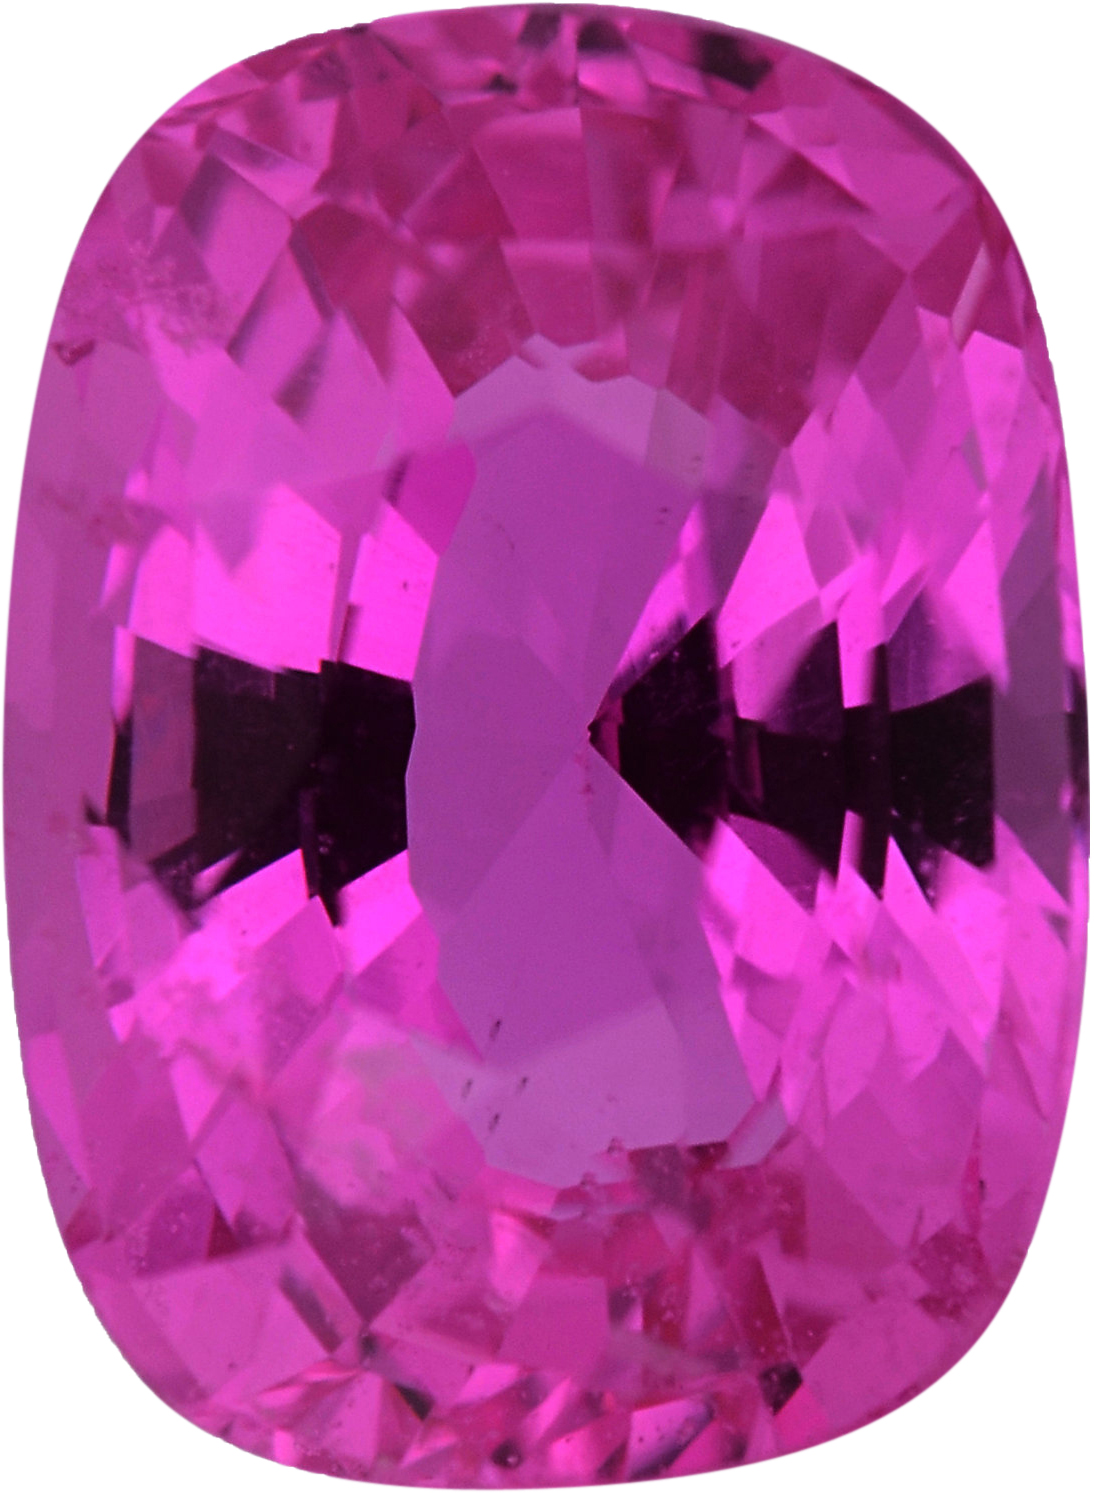 Top Gem Sapphire Loose Gem in Antique Cushion Cut, Medium Red Purple Or Purple Red, 7.69 x 5.65  mm, 1.66 Carats